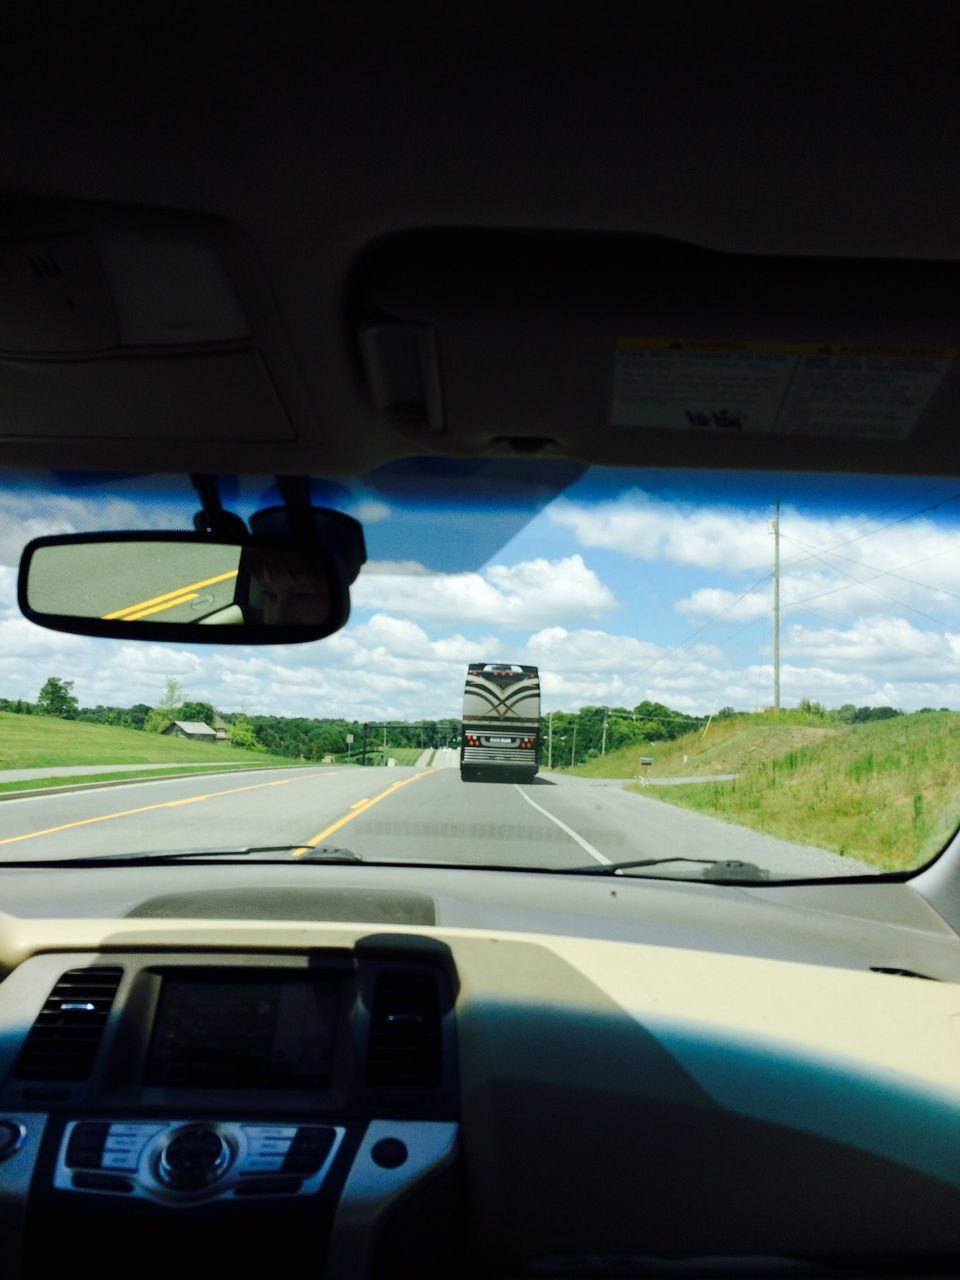 Following a tour bus in Brentwood, Tennessee